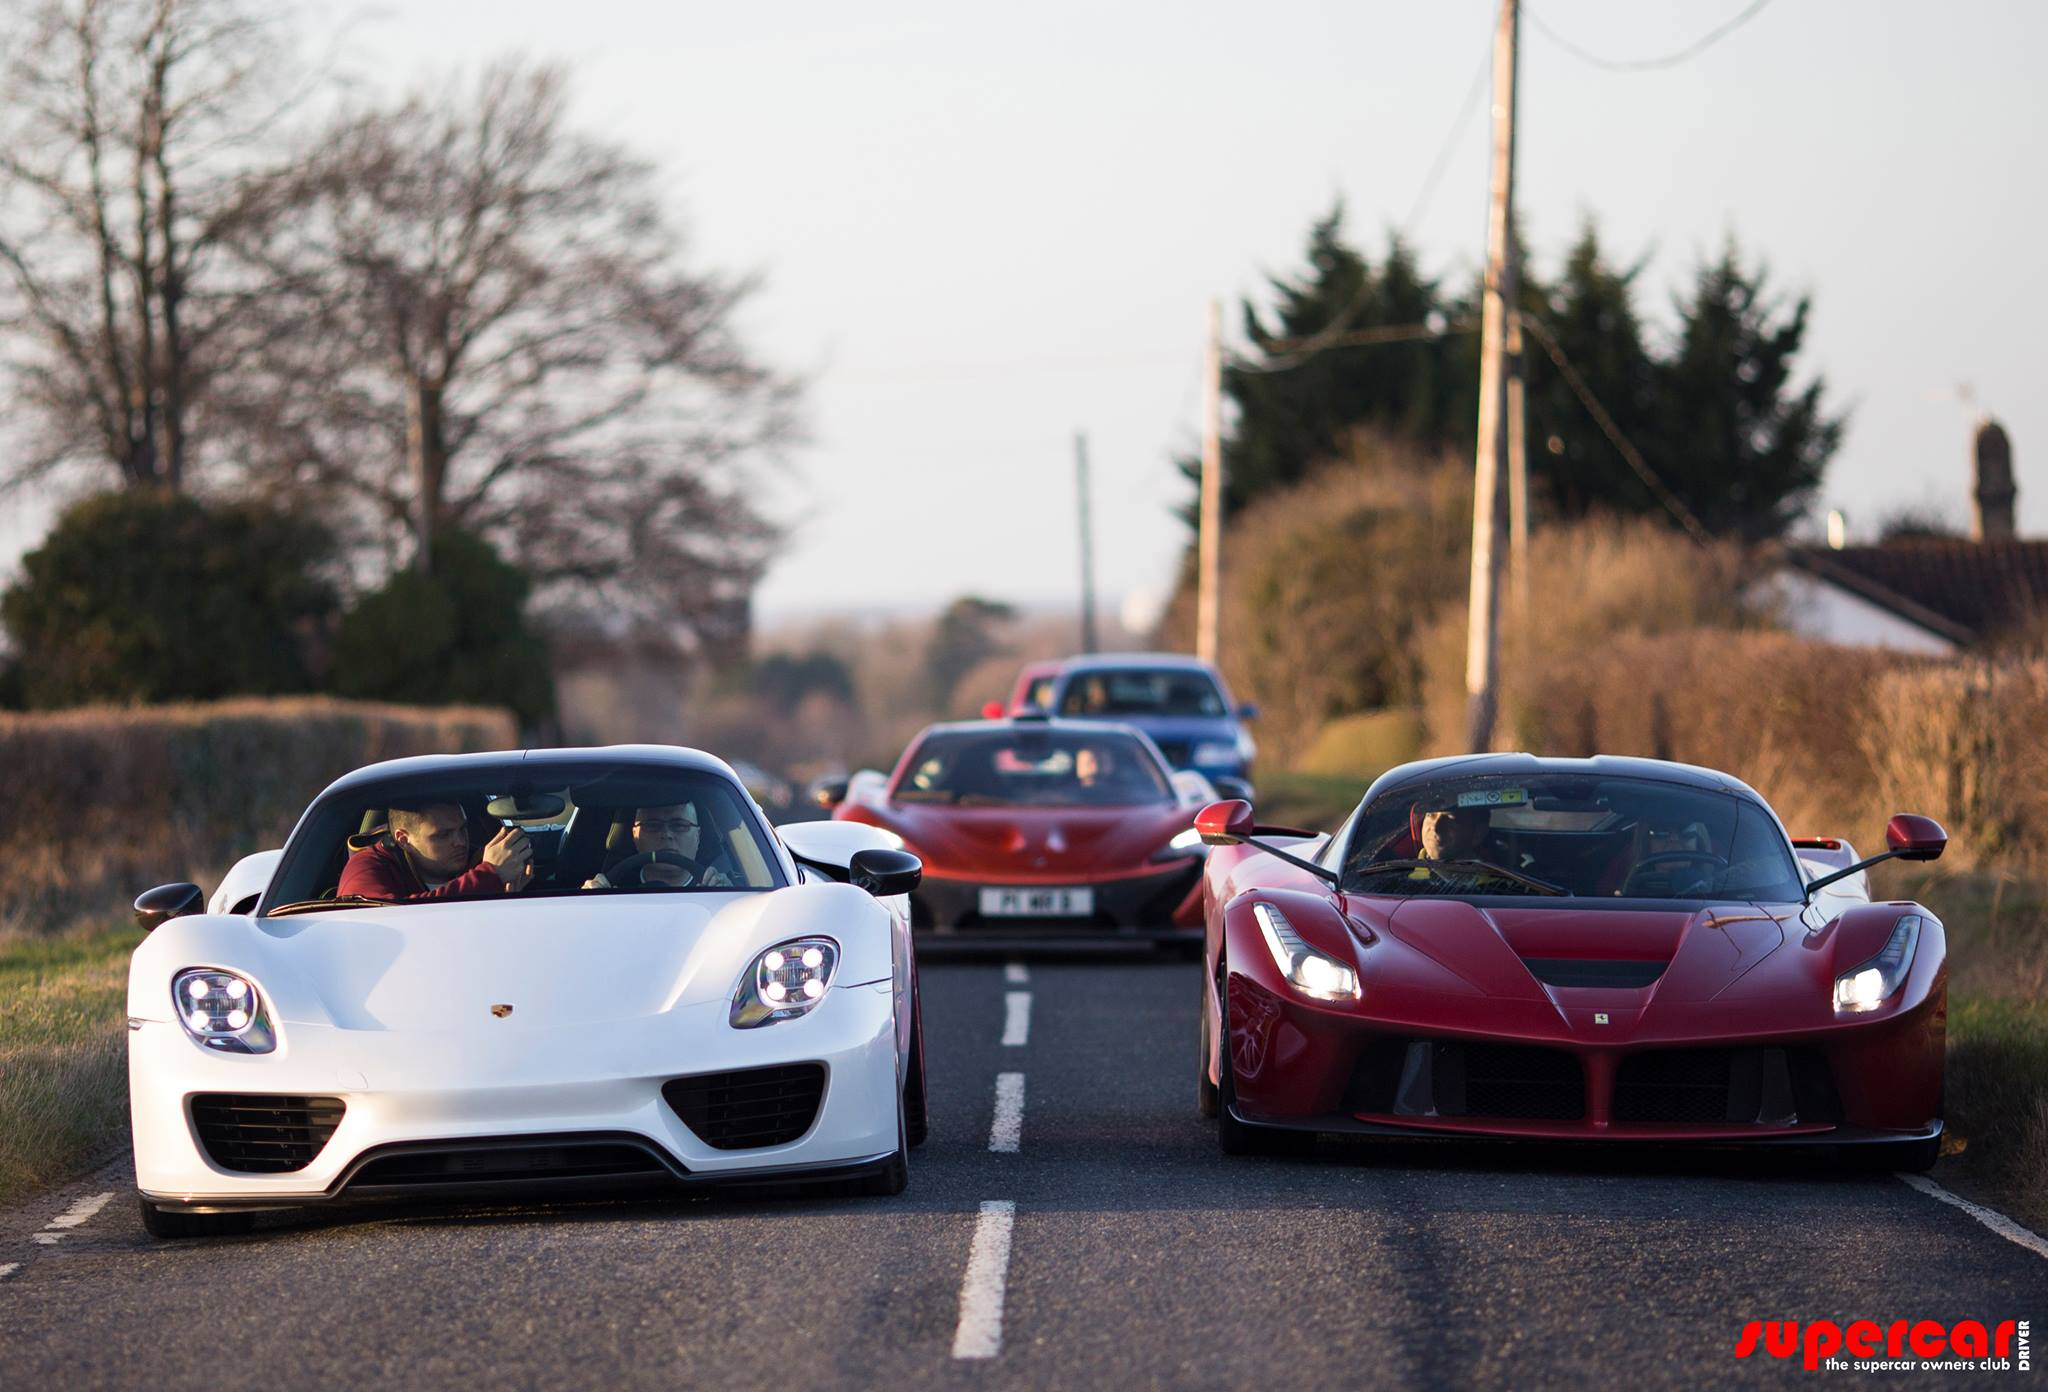 Paul Bailey and his Holy Trinity of Hypercars Photo: motorauthority